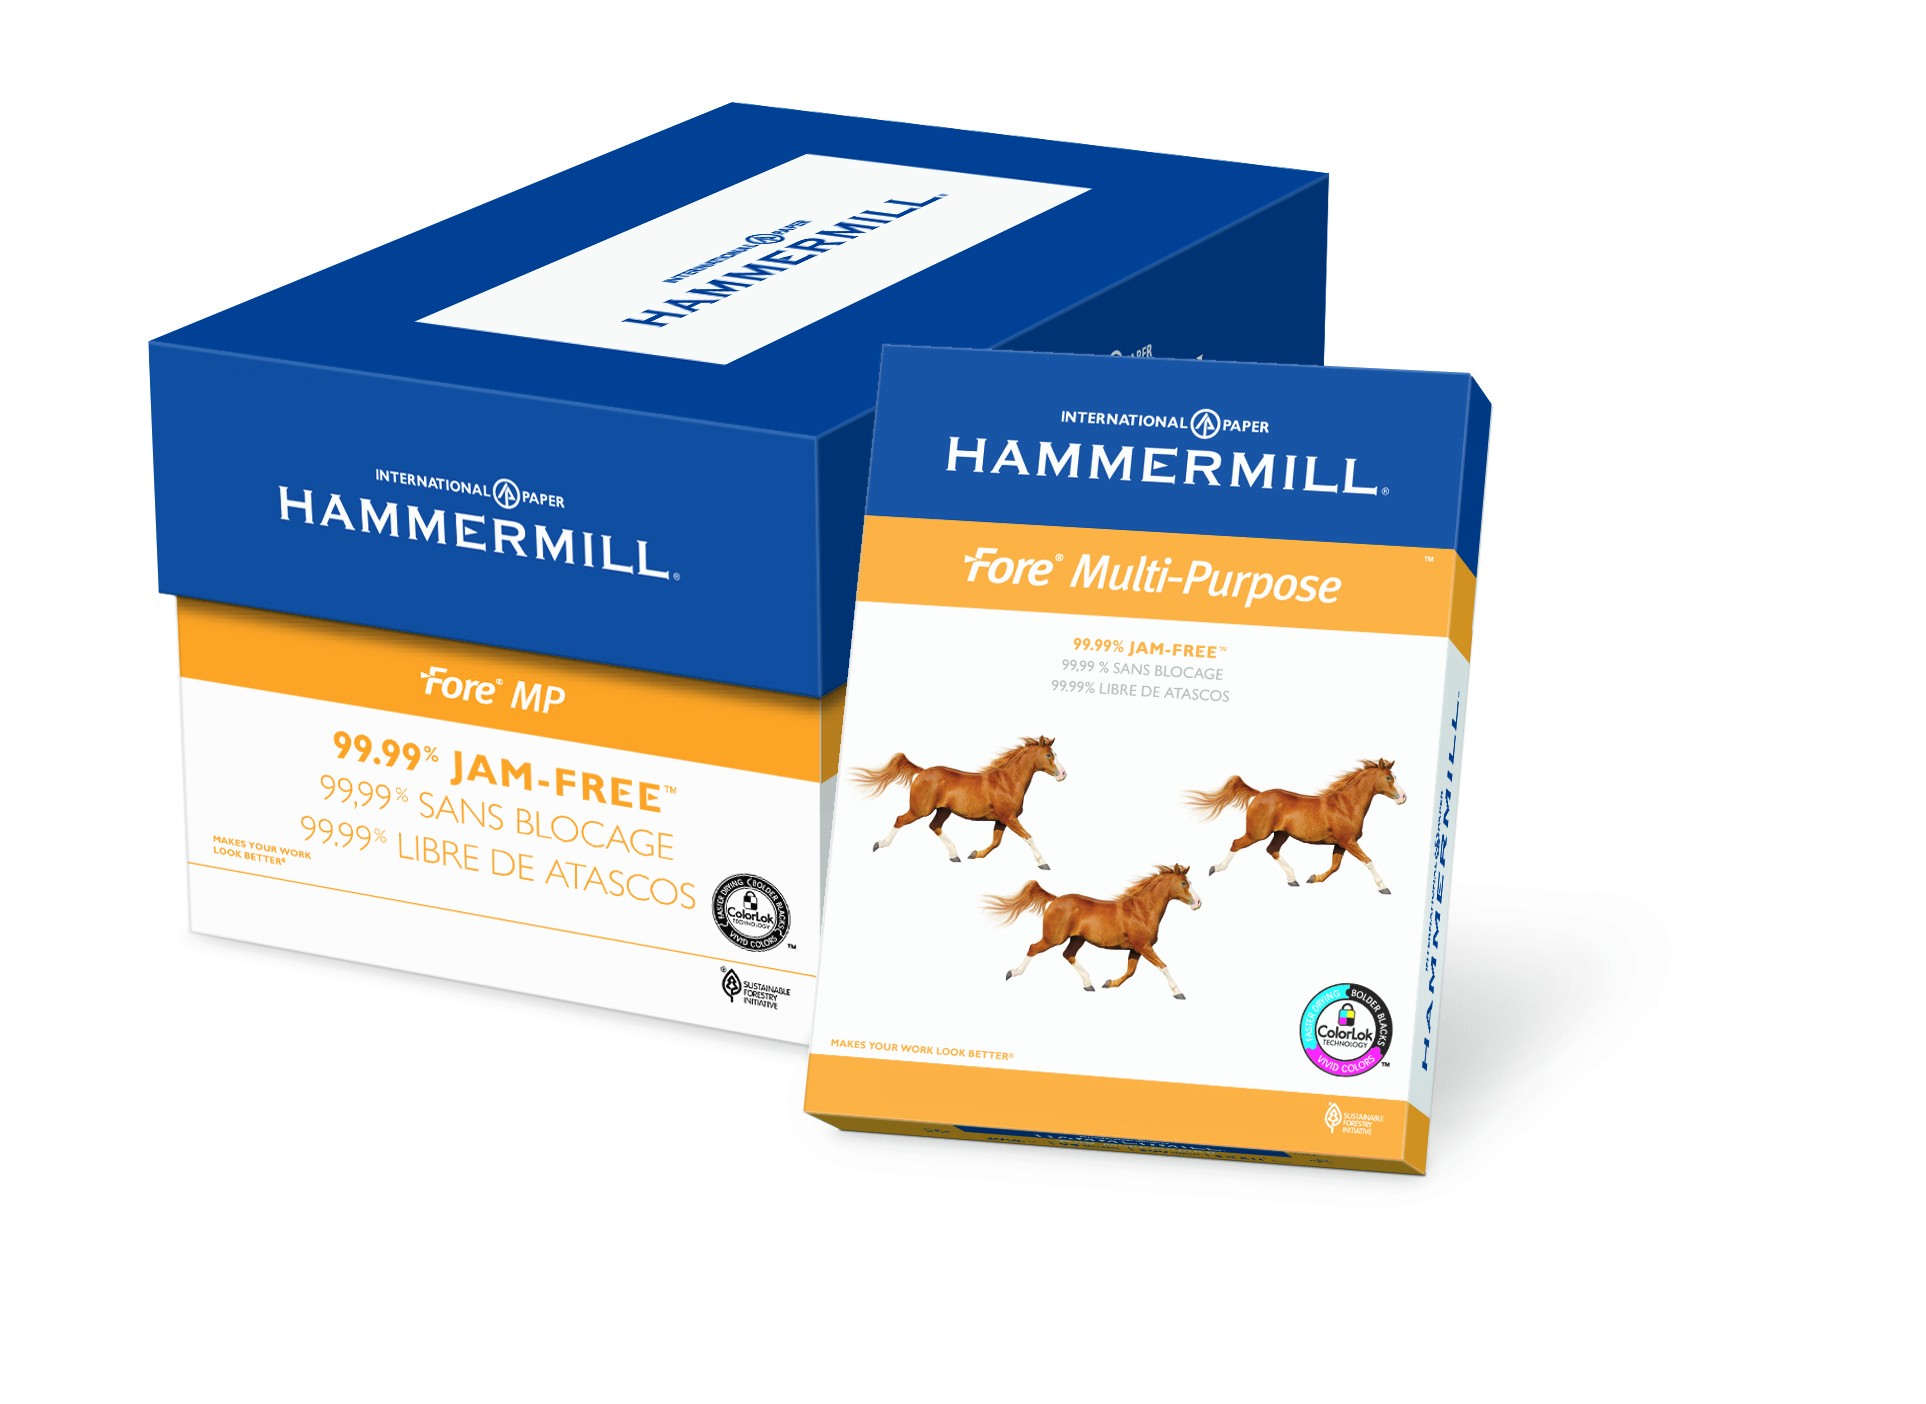 hammermill copy paper Hammermill copy plus copy paper measuring 8-1/2 x 14 in used for high-speed, dry toner plain paper copiers and offset duplicators this acid-free paper has ge 92 brightness and offers good opacity for minimal show through with 20 lb capacity.